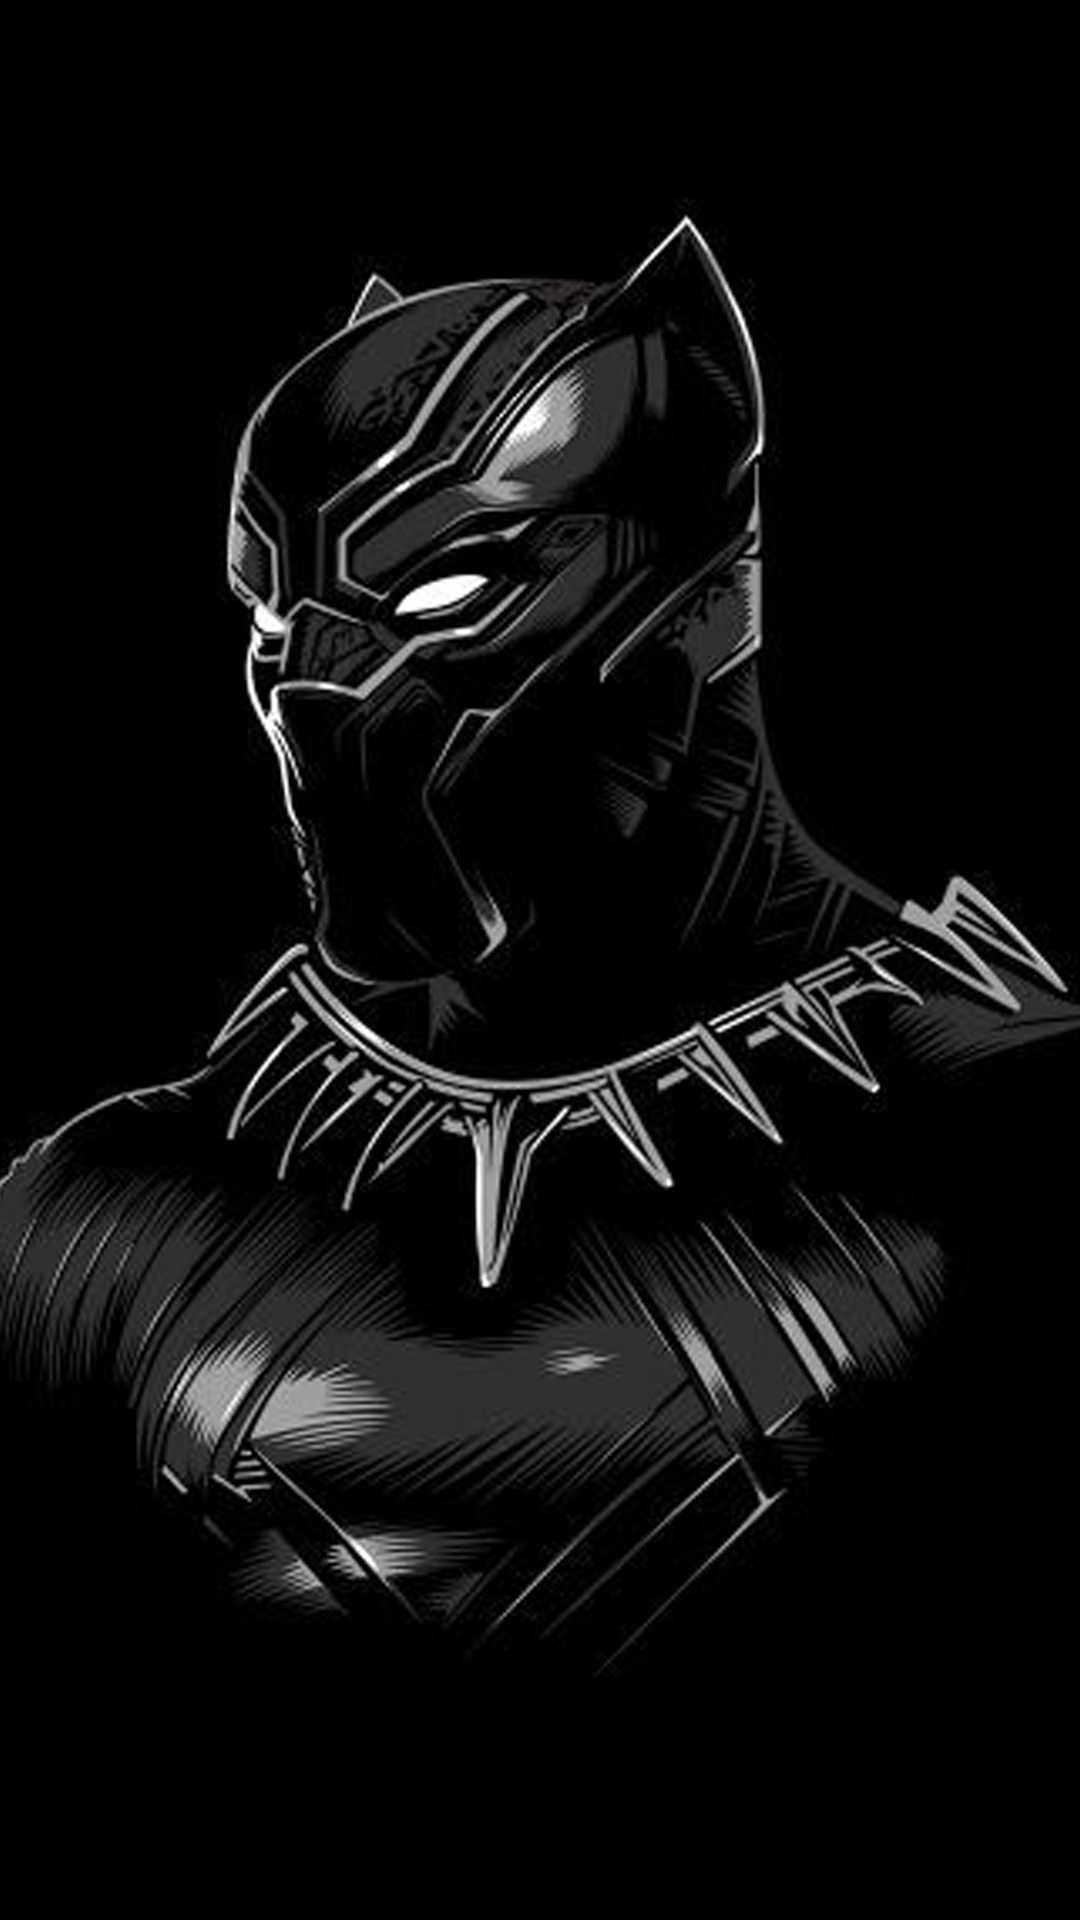 High Resolution Black Panther Wallpaper 4k Iphone